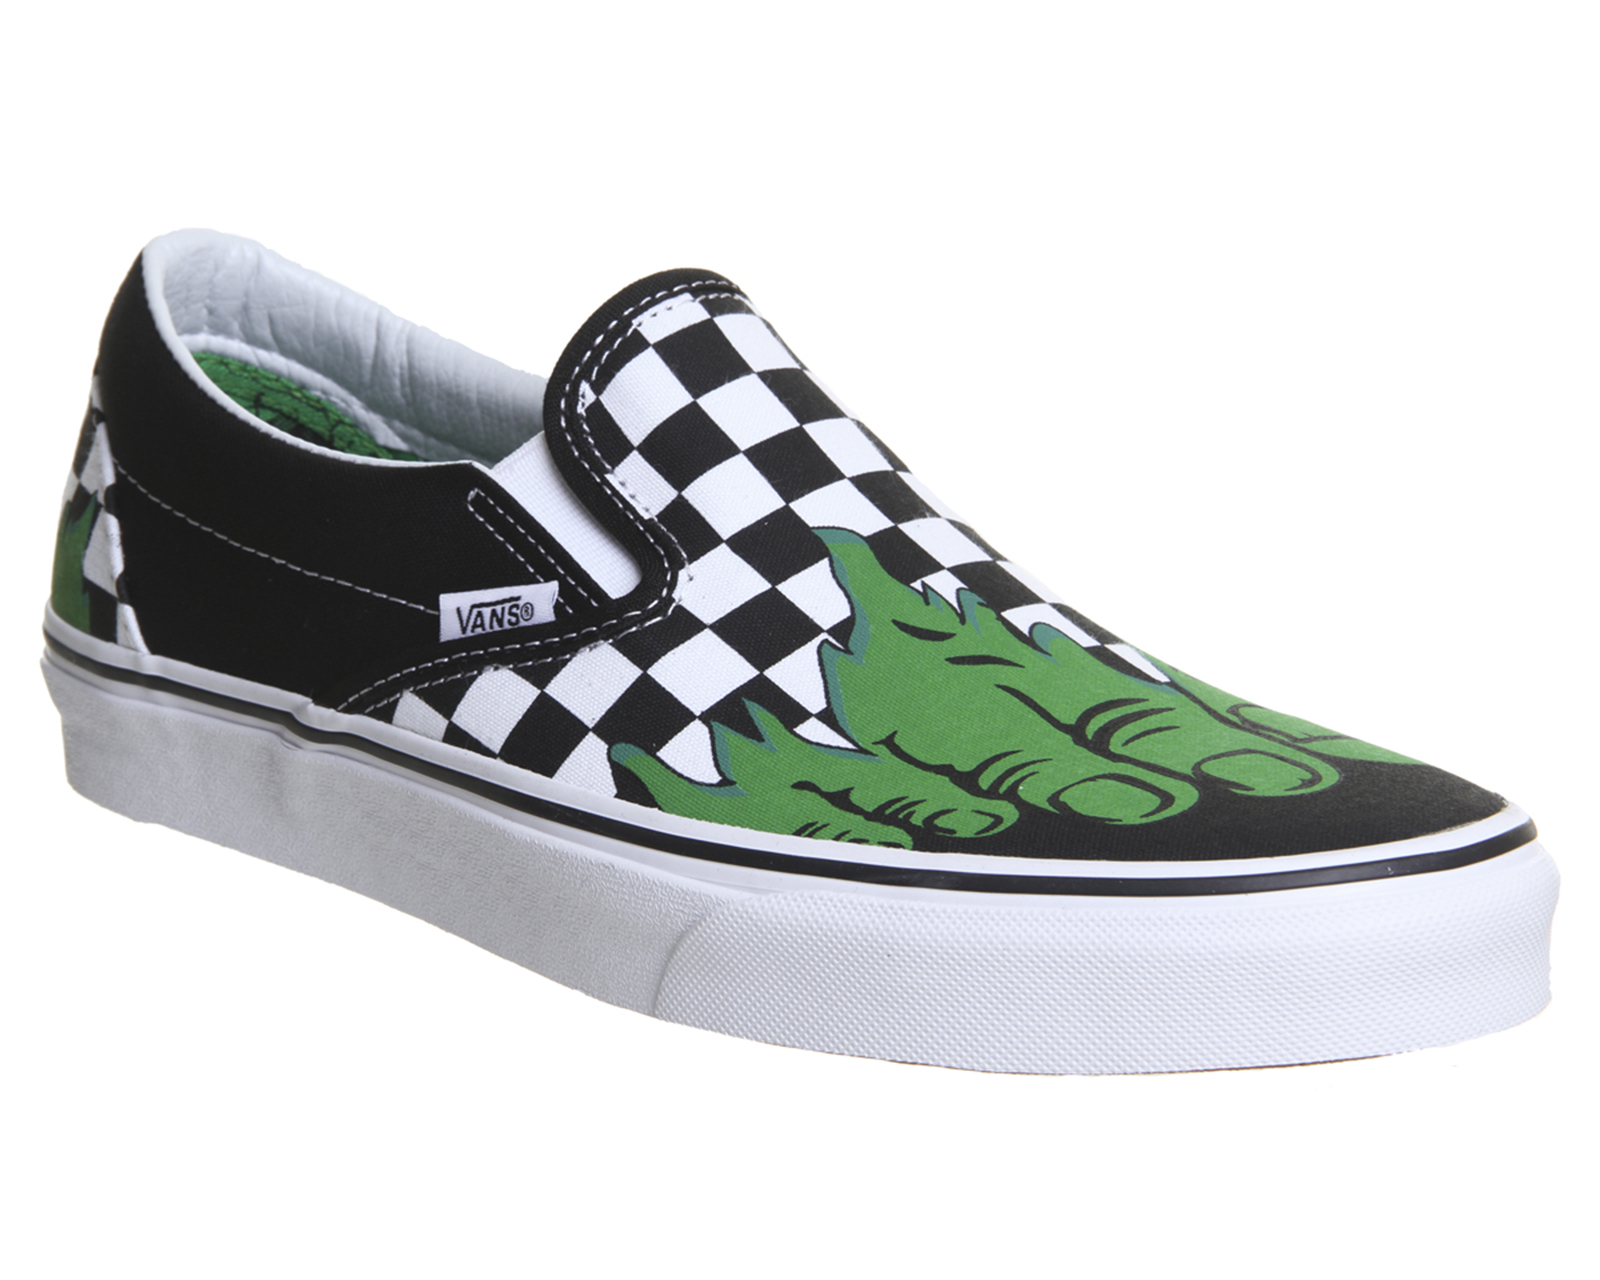 d50ed2ecc4a2fd Mens Vans Vans Classic Slip On Trainers Hulk Checkerboard Marvel ...